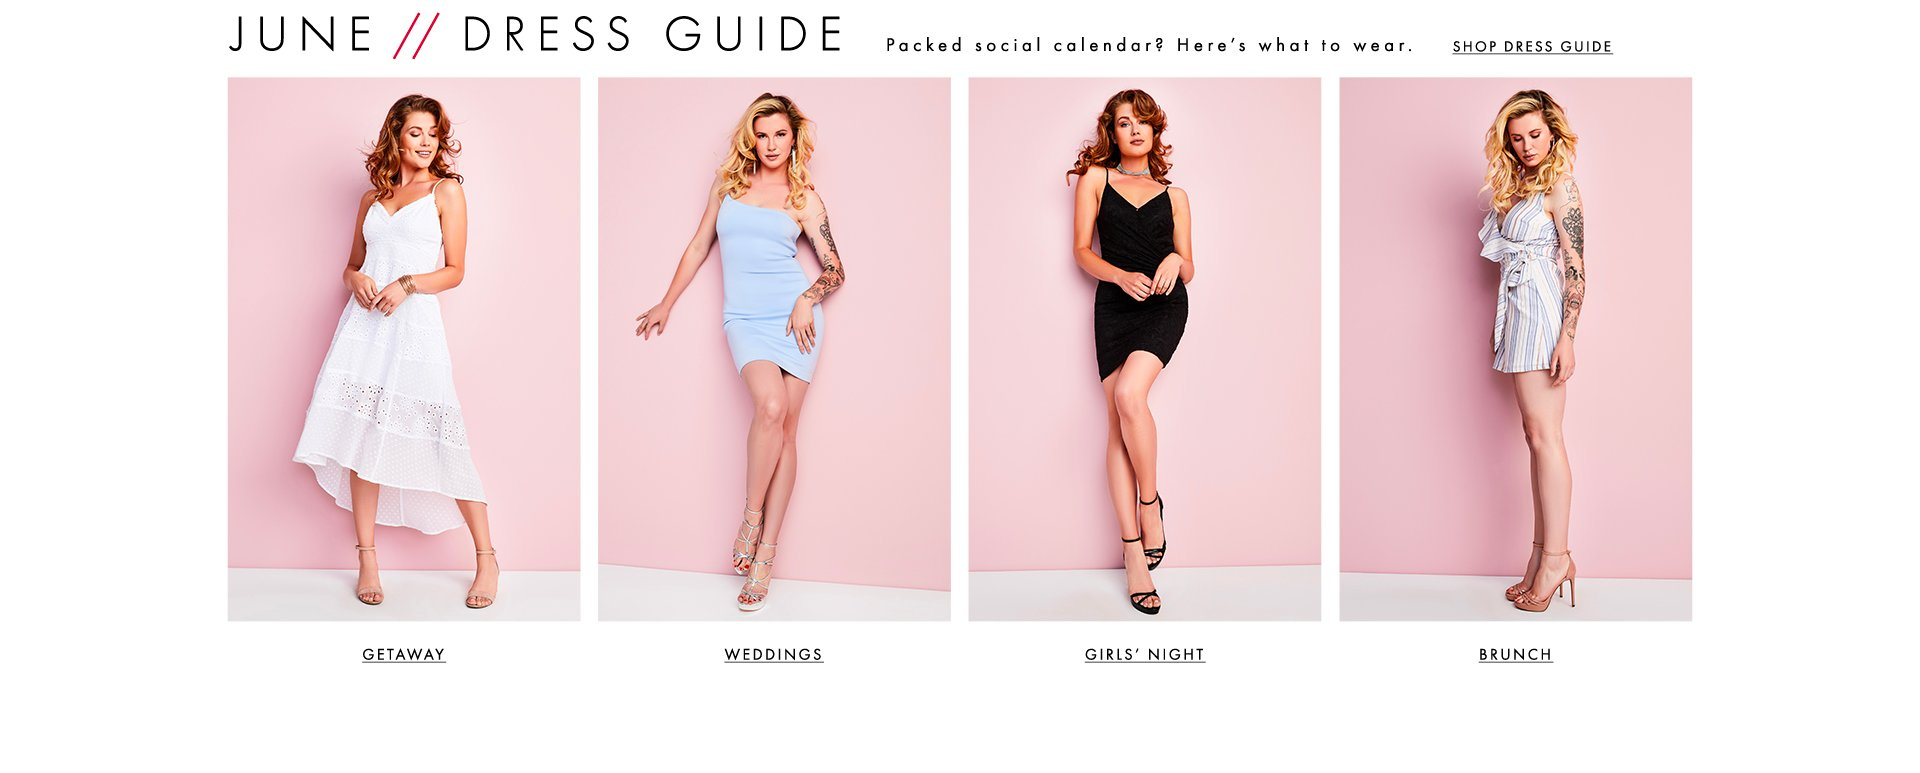 Shop Junes Dress Guide